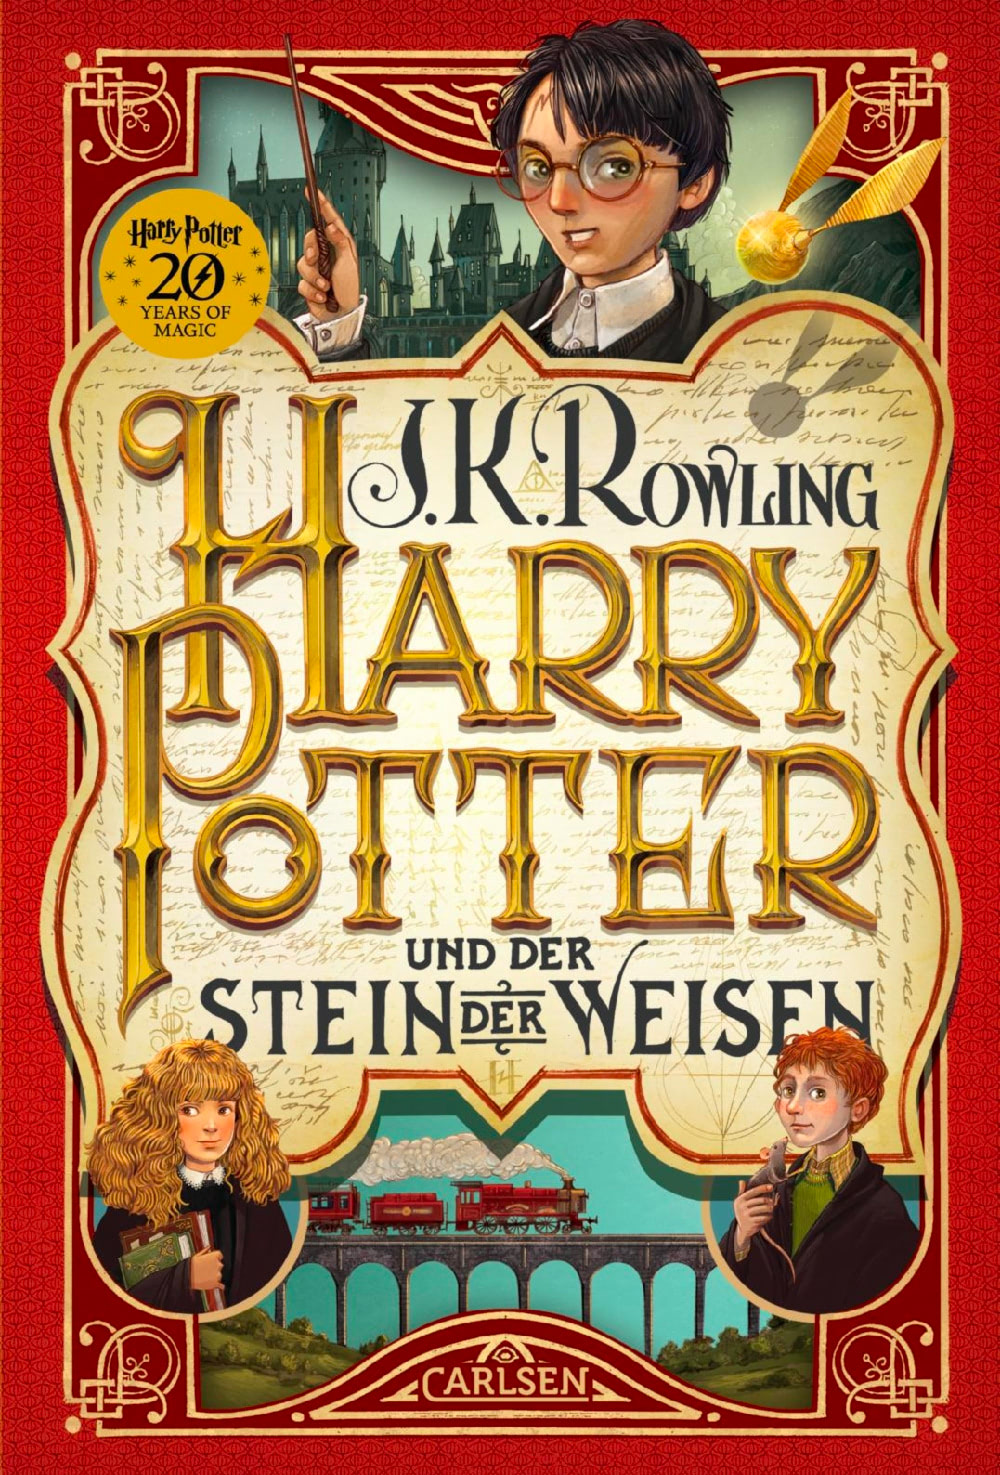 'Philosopher's Stone' German '20 Years of Magic' edition